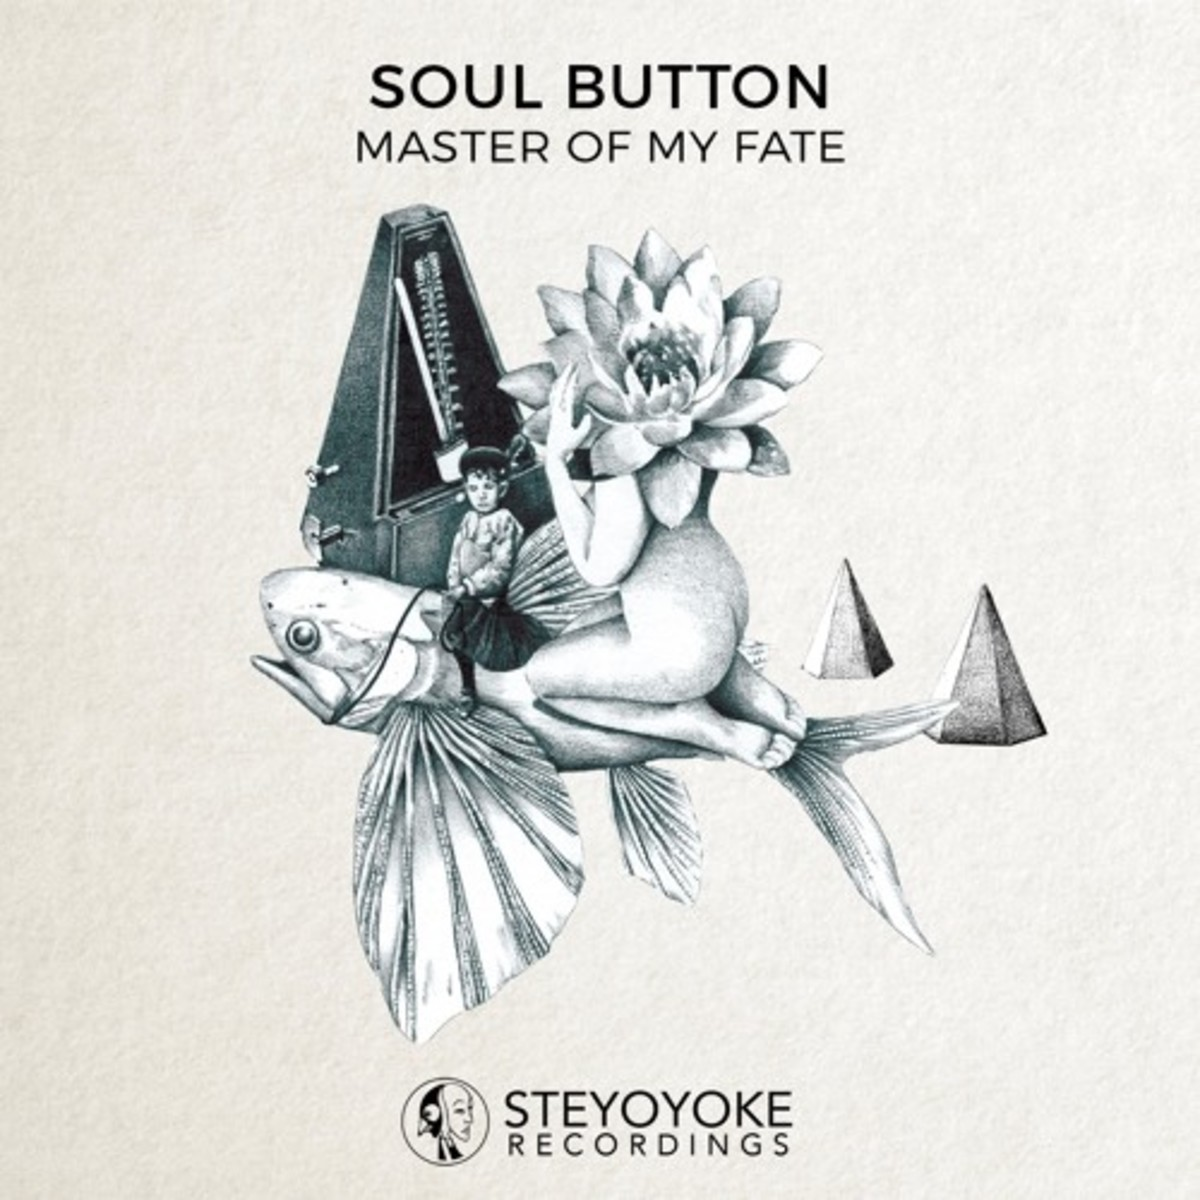 SoulButton